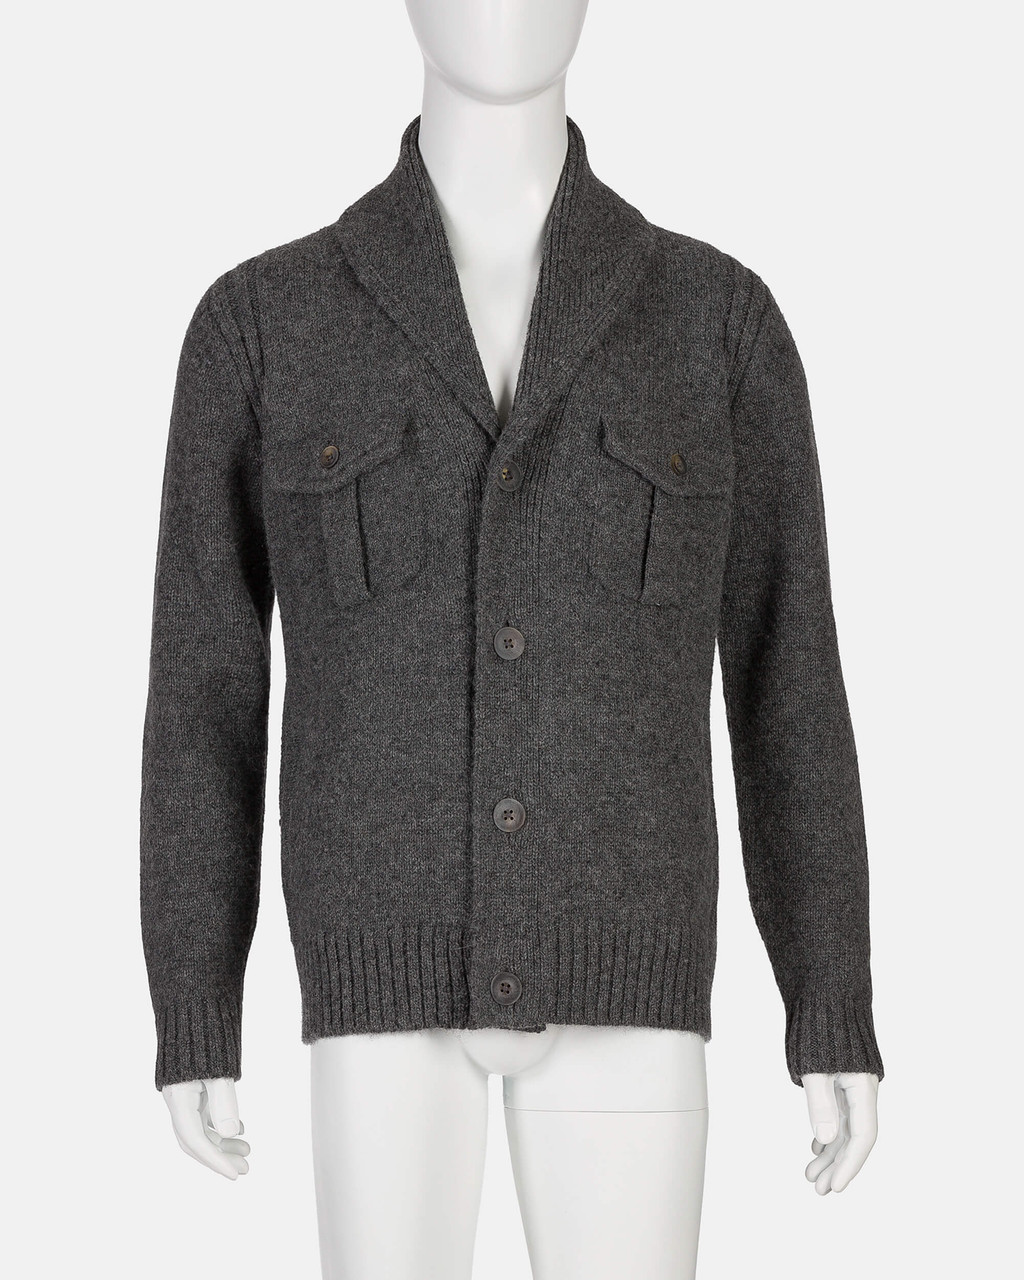 Alicia Adams Alpaca Milos Sweater , mens alpaca wool sweater, alpaca cardigan, fair trade made mens alpaca sweater, dark grey alpaca wool sweater